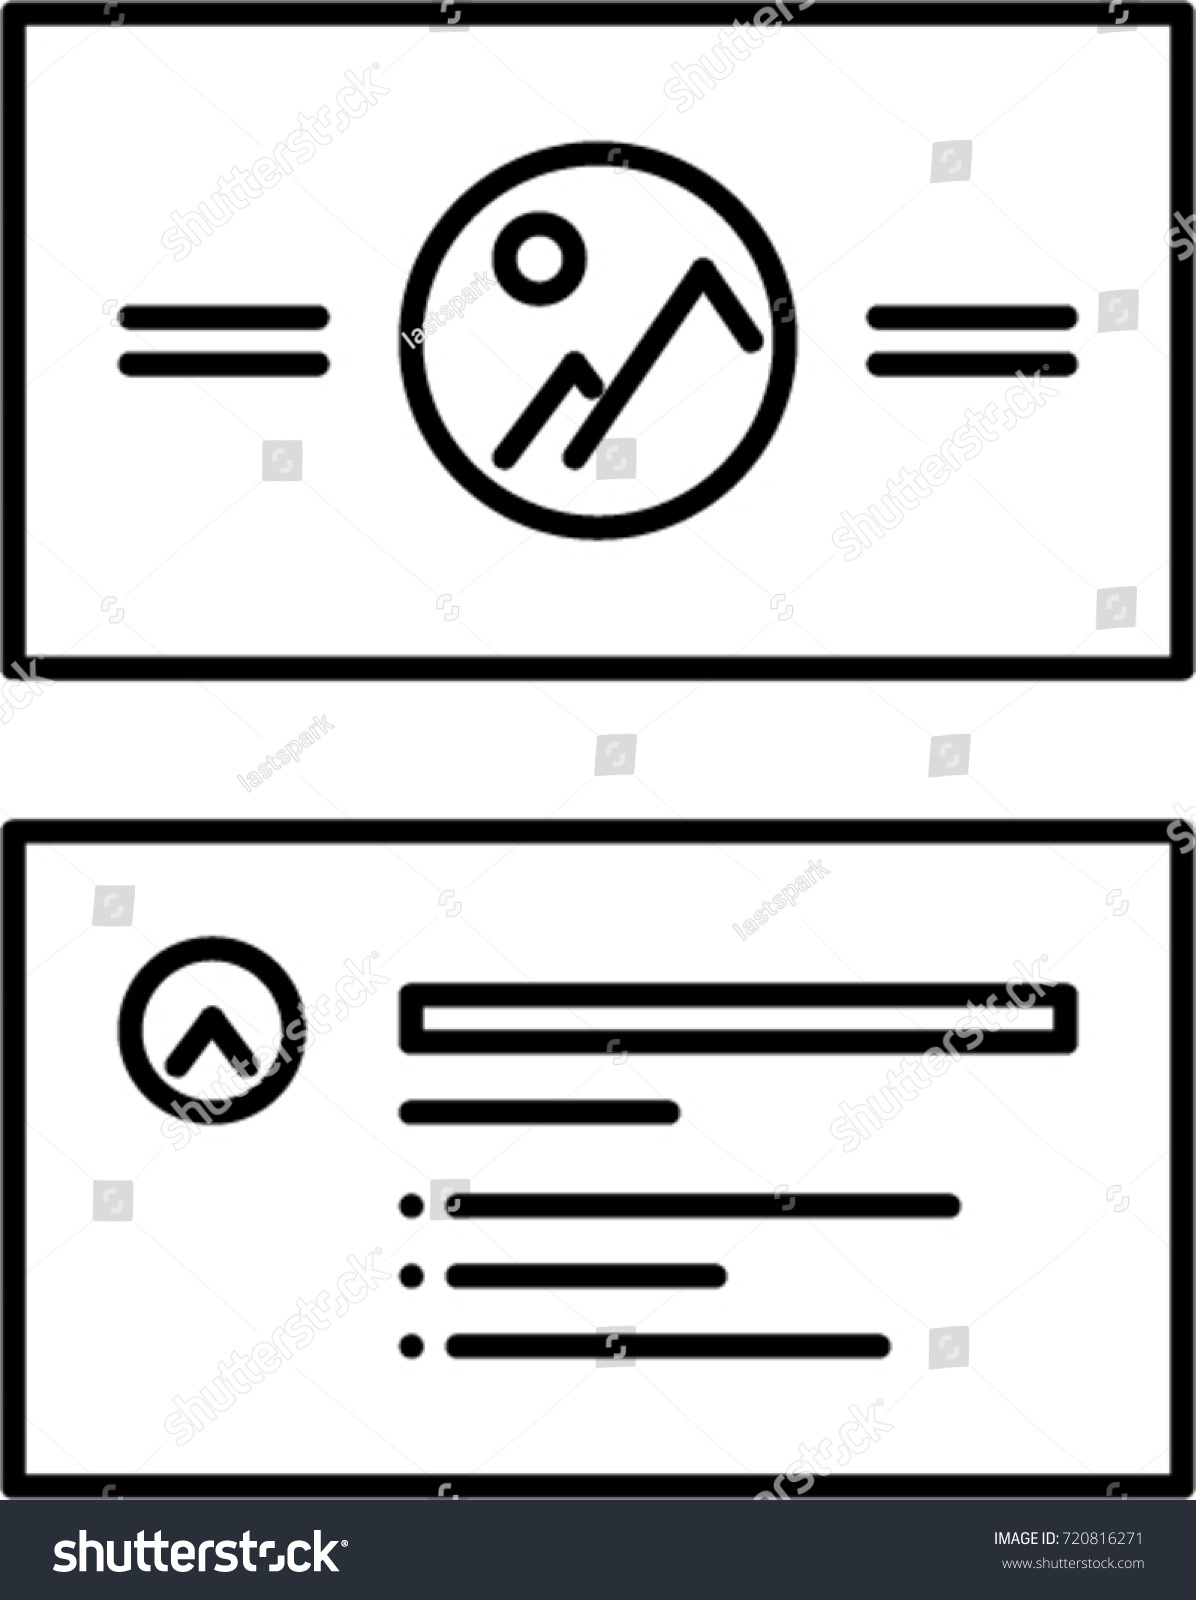 Business Card Outline Icon Stock Vector 720816271 - Shutterstock